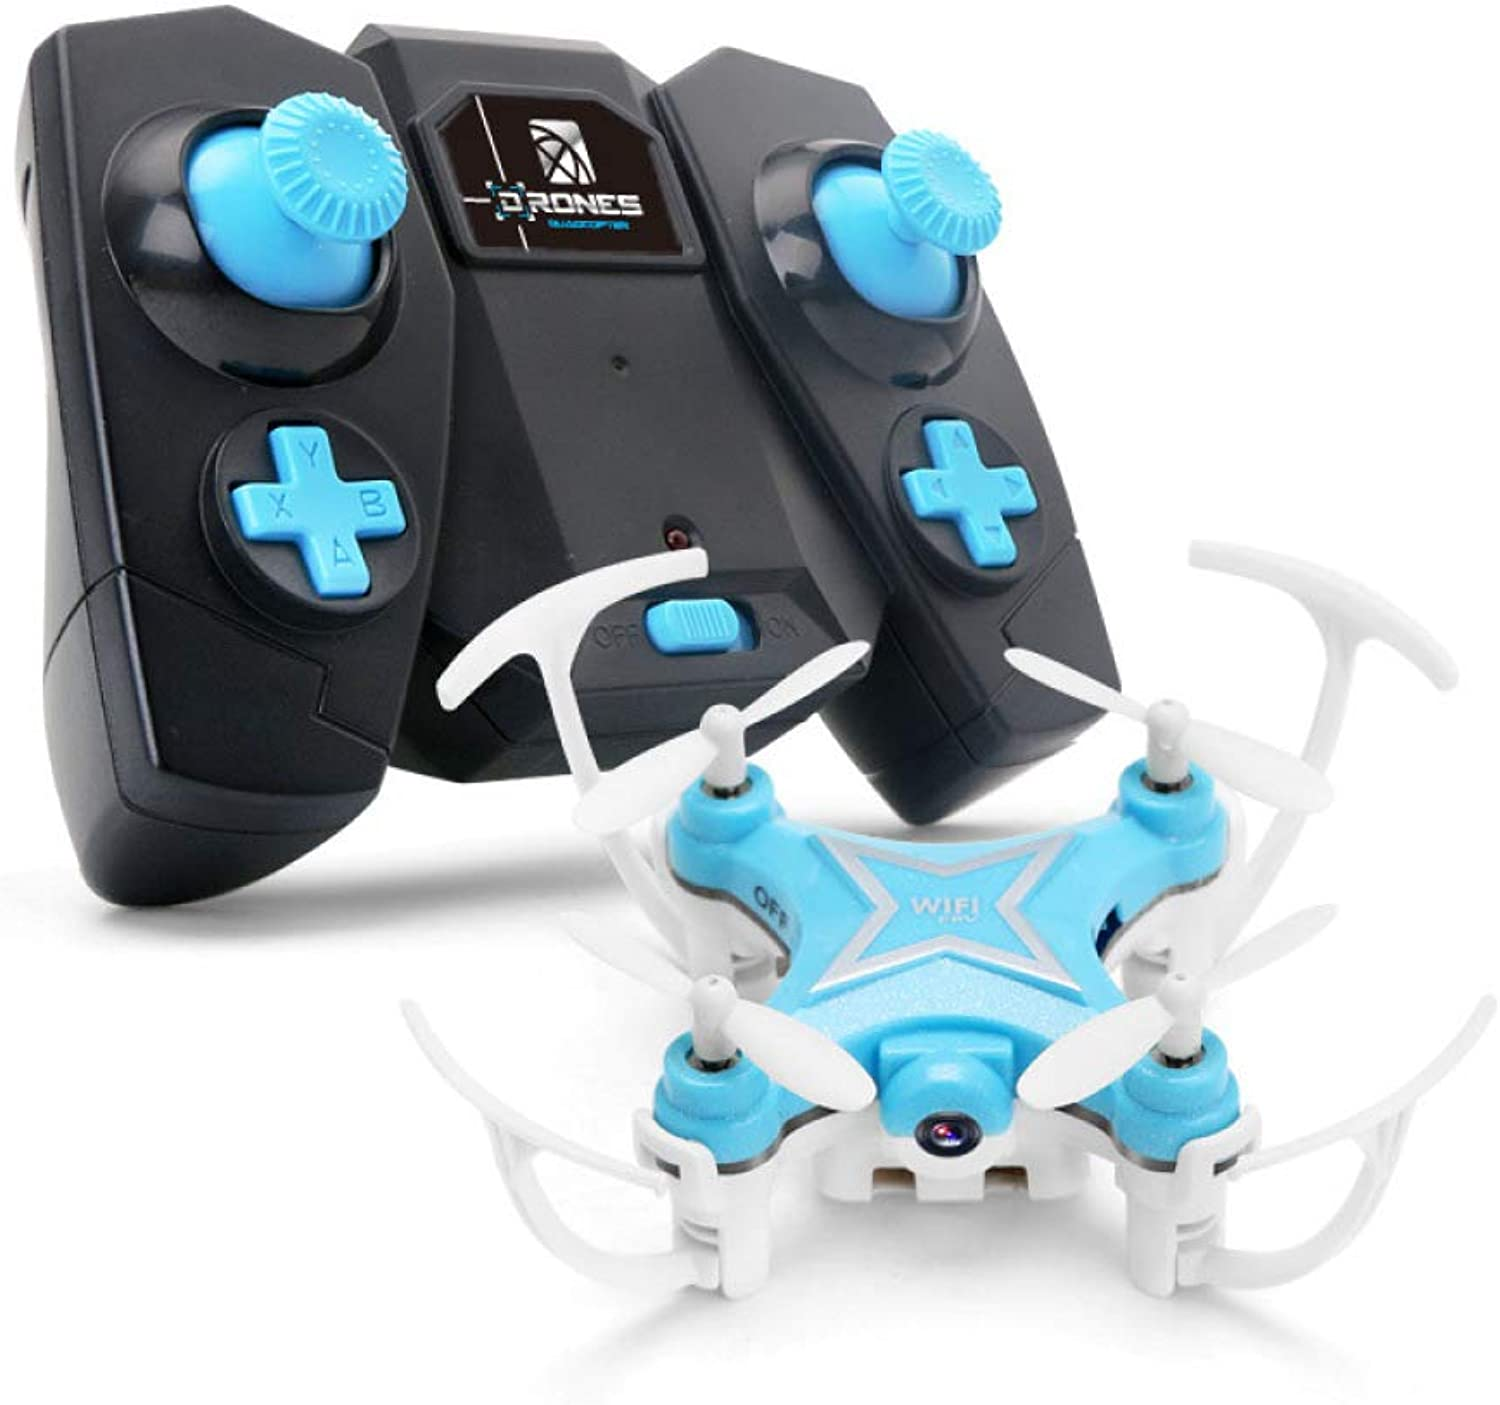 ERKEJI Drone Gravity induction Remote control mini fouraxis aircraft pneumatic fixed height toy aircraft 720P Aerial photo realtime transmission WiFi FPV VR